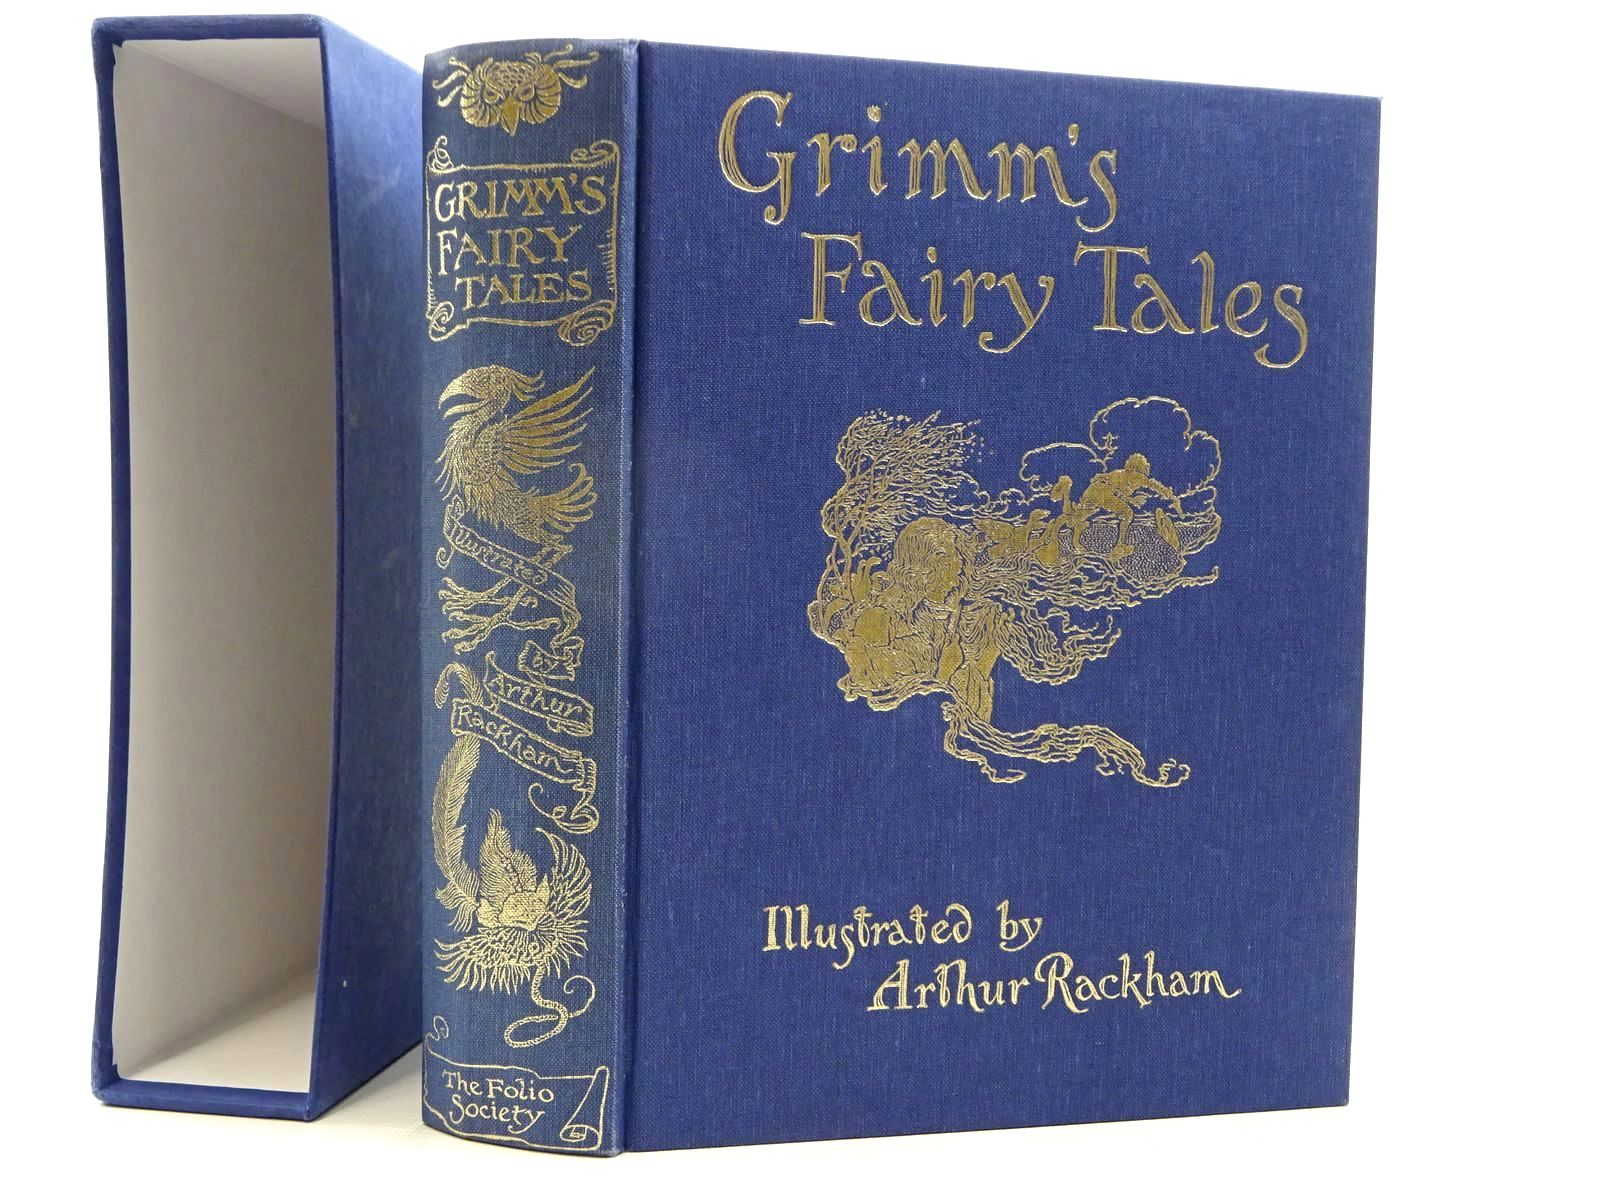 Photo of GRIMM'S FAIRY TALES written by Grimm, Brothers illustrated by Rackham, Arthur published by Folio Society (STOCK CODE: 2125065)  for sale by Stella & Rose's Books